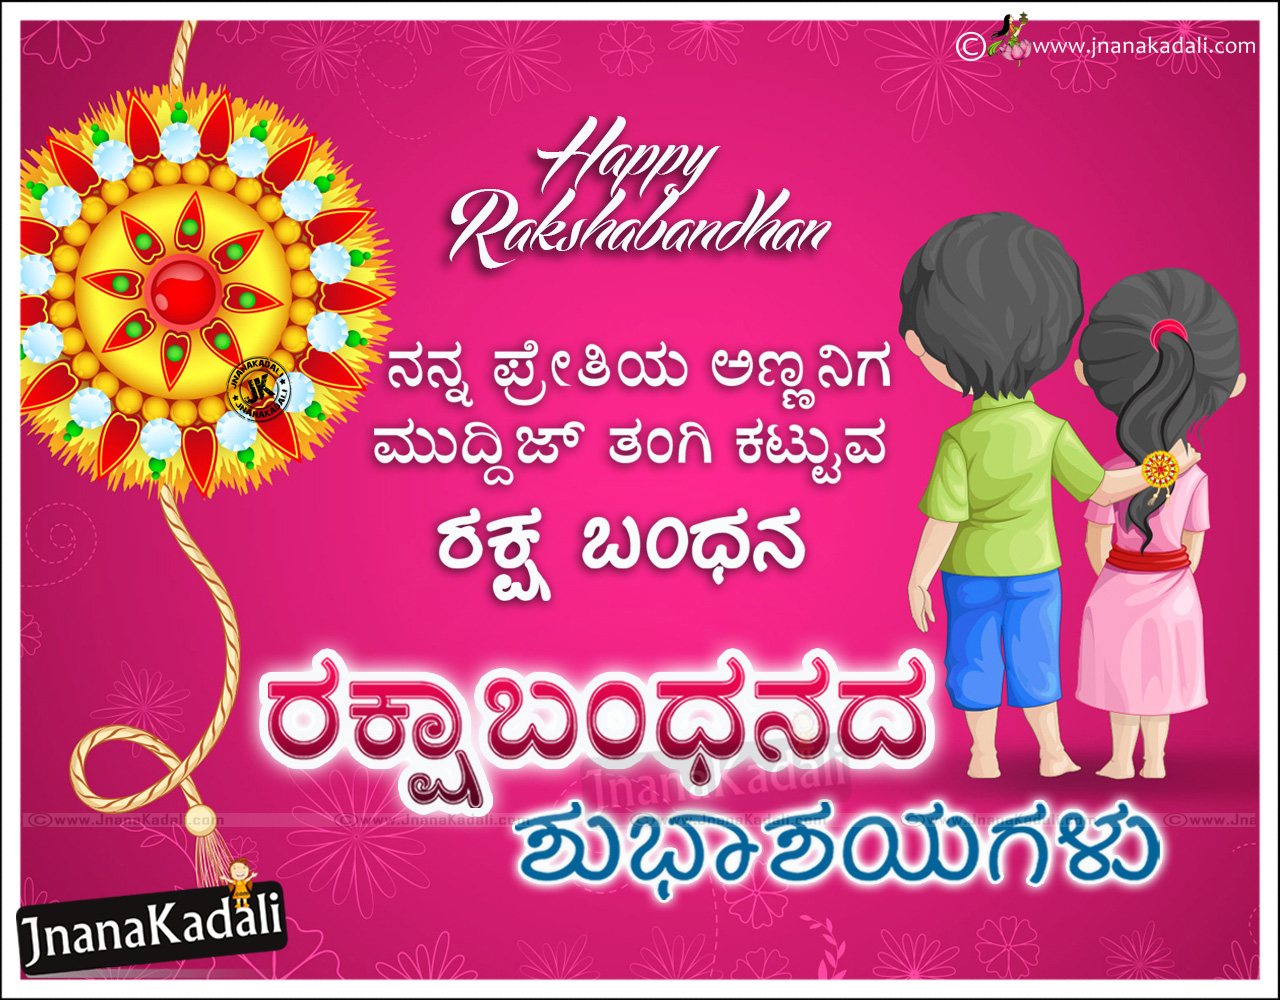 Good Morning Brother And Sister Quotes In Hindi Kannada Nice Raksha Bandhan Quotations Wallpapers